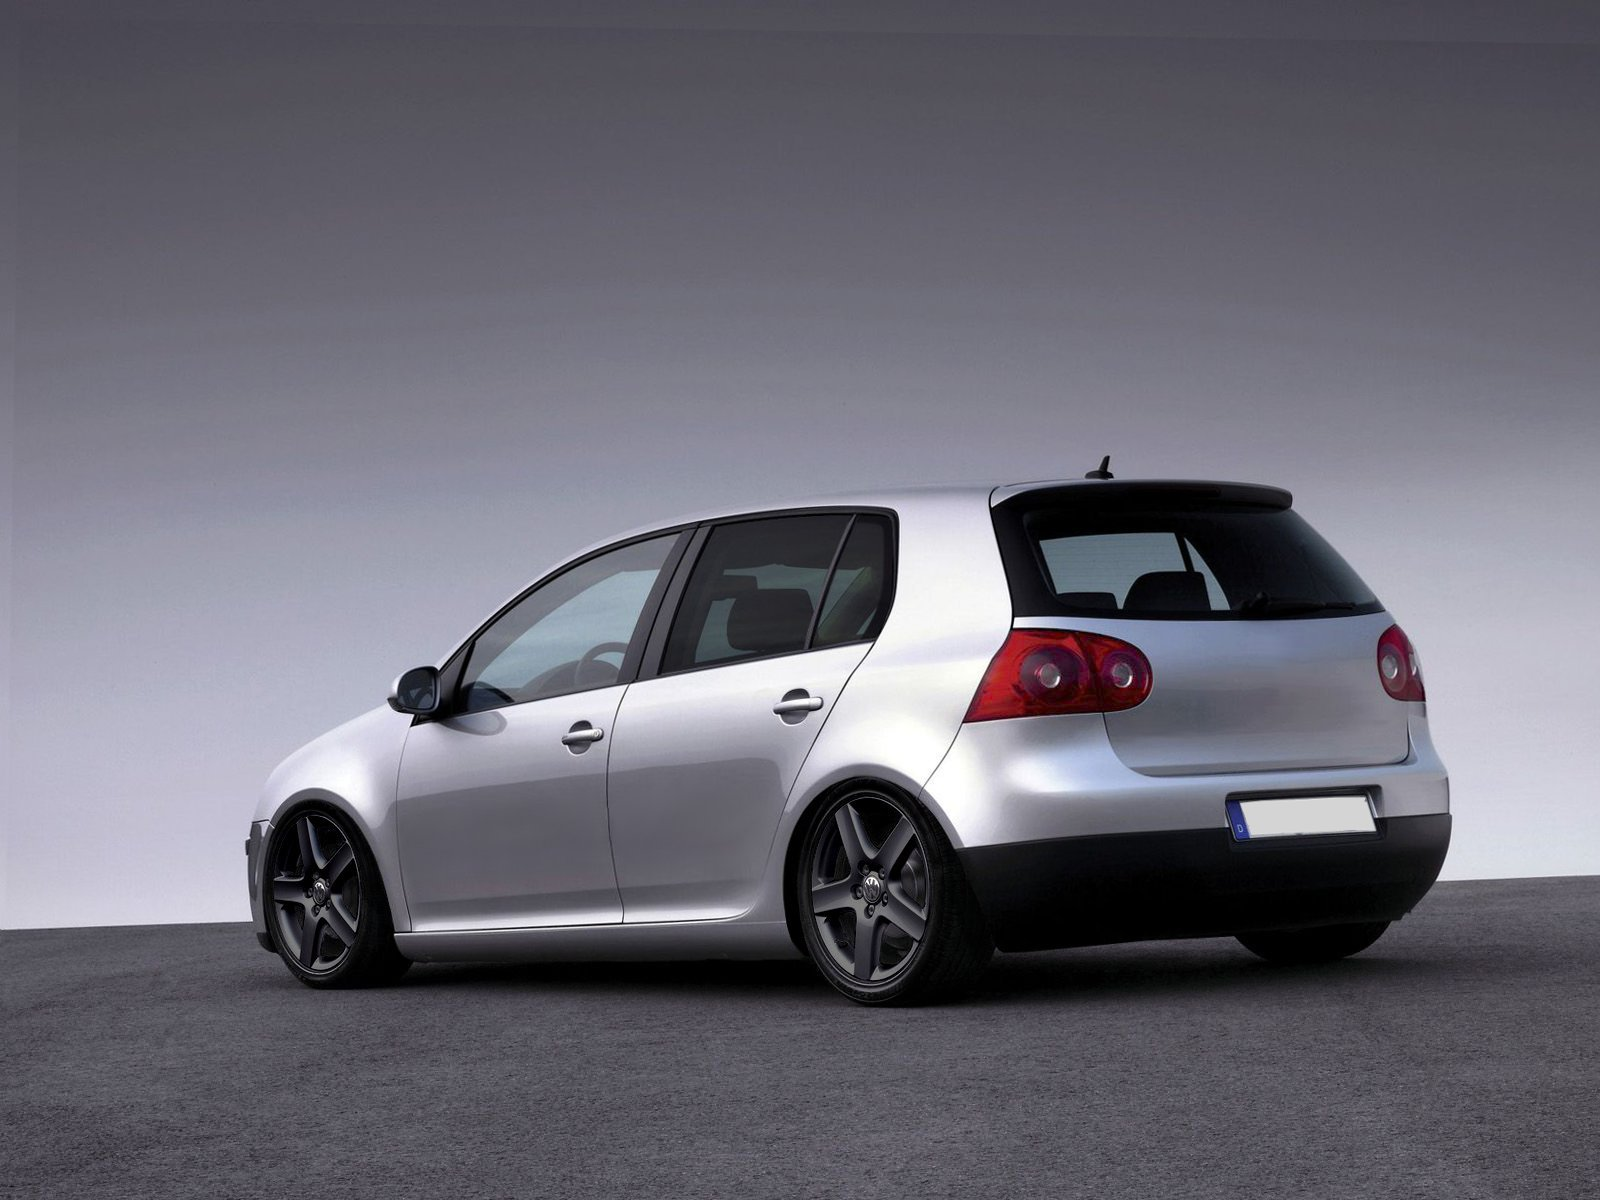 volkswagen golf 5 1 6 fsi deine automeile im netz. Black Bedroom Furniture Sets. Home Design Ideas